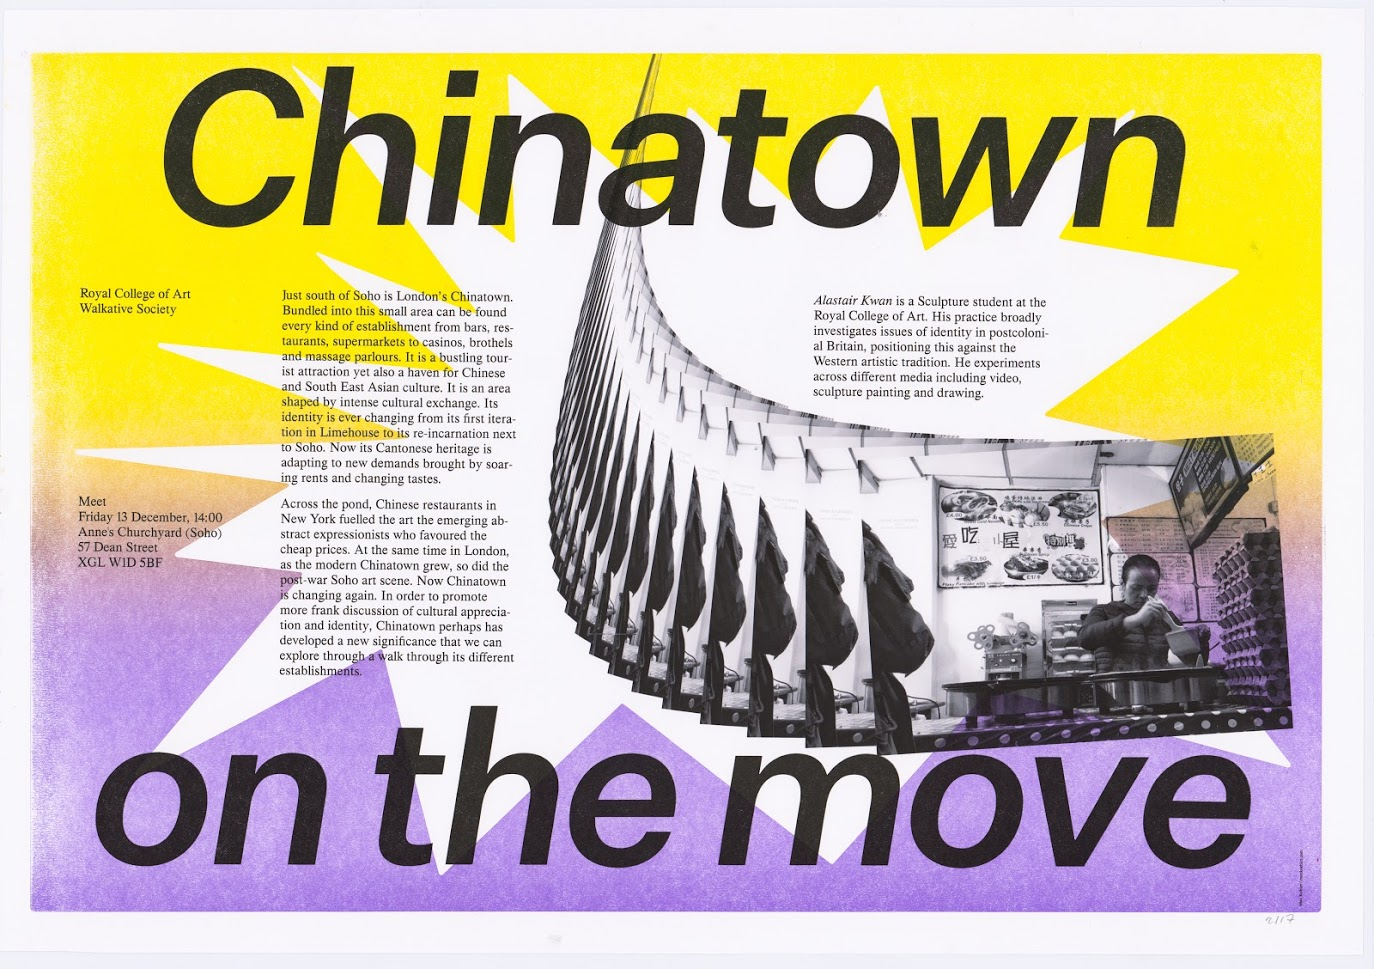 Scan of the chinatown poster